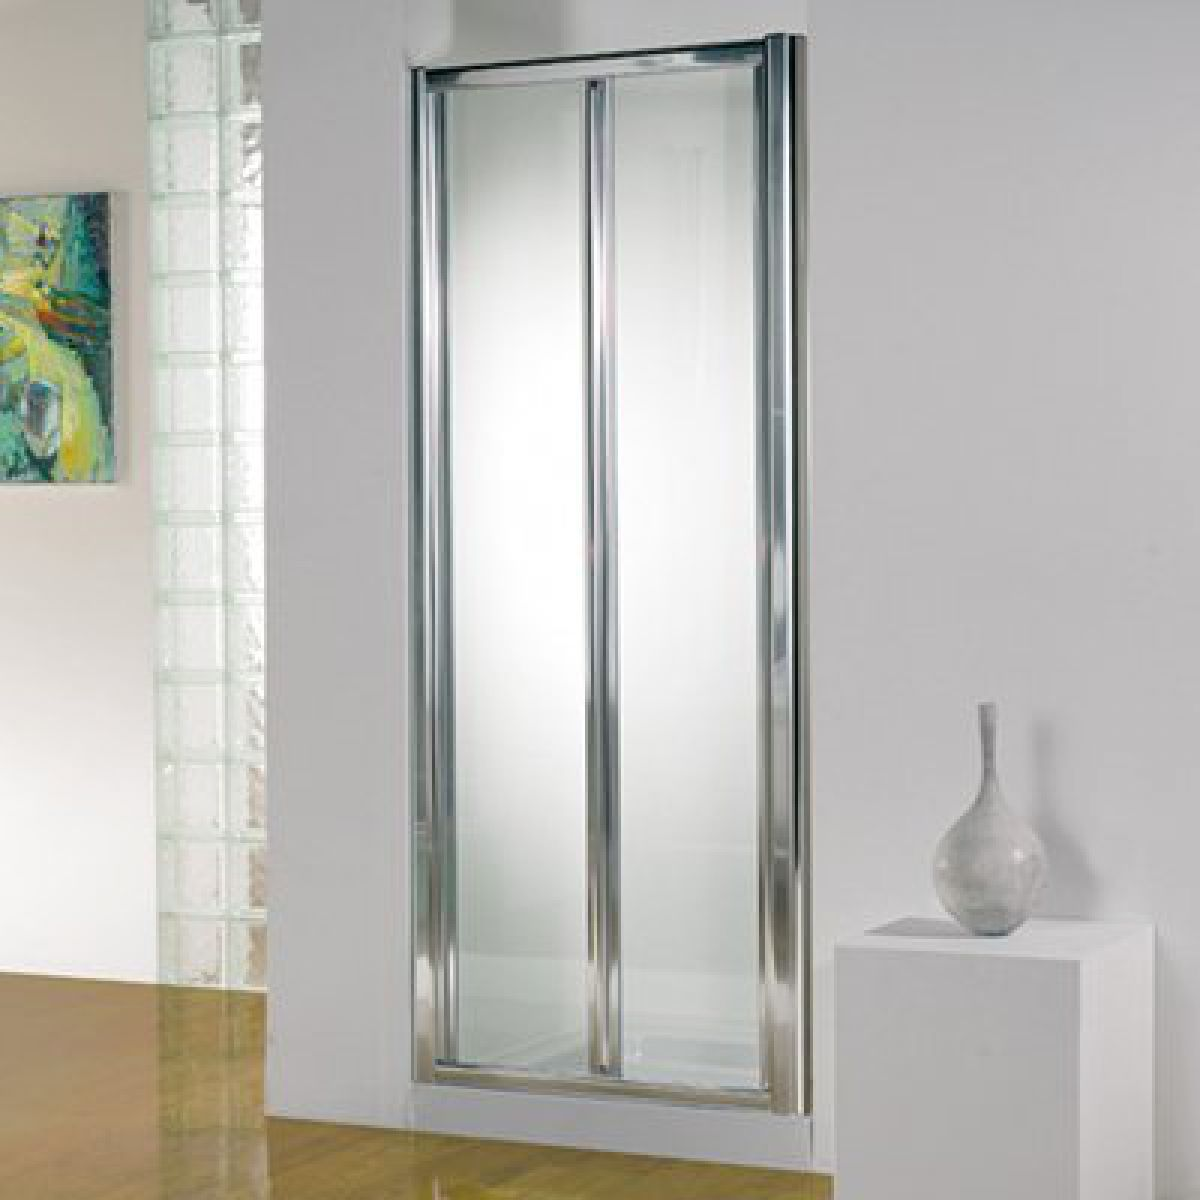 Frosted Bathroom Doors Uk glass toilet door images - glass door, interior doors & patio doors